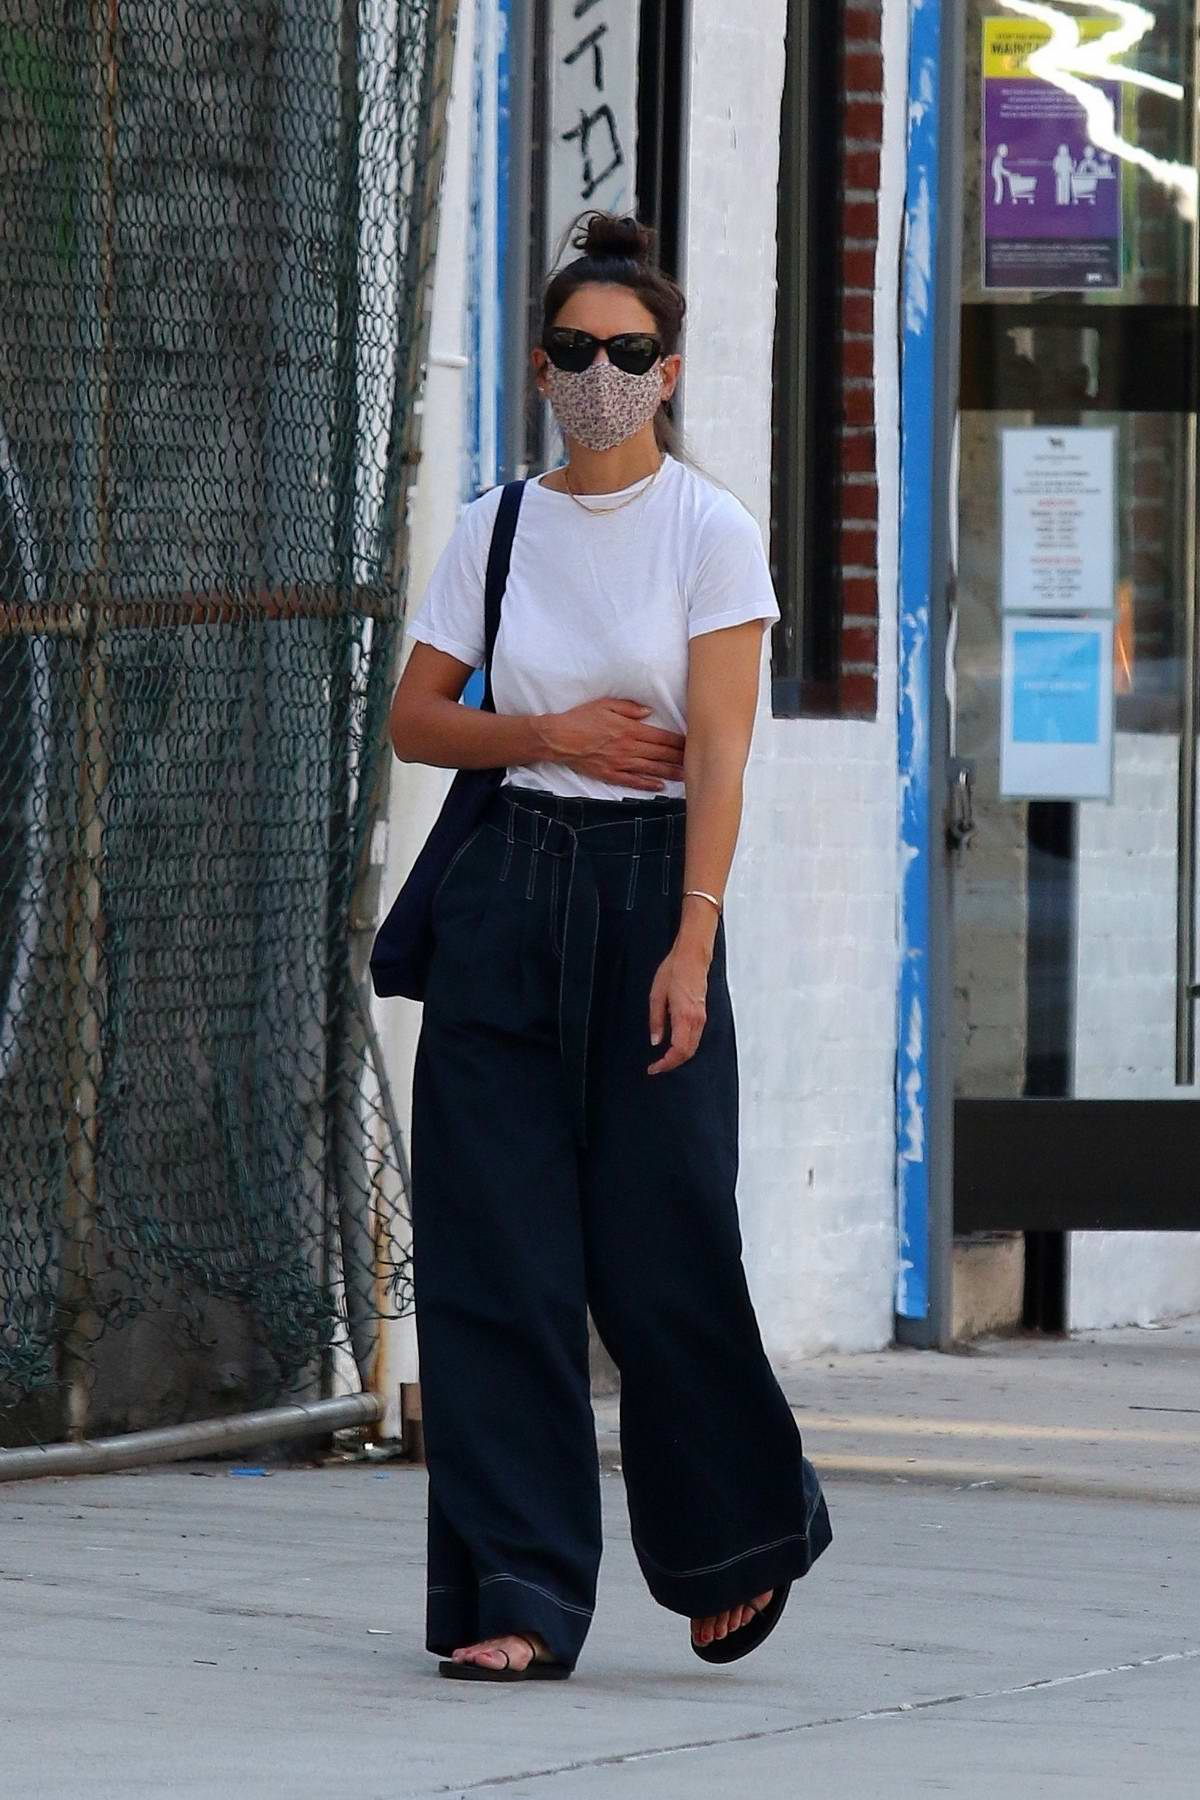 katie-holmes-spotted-out-in-new-york-city-august-1-2020